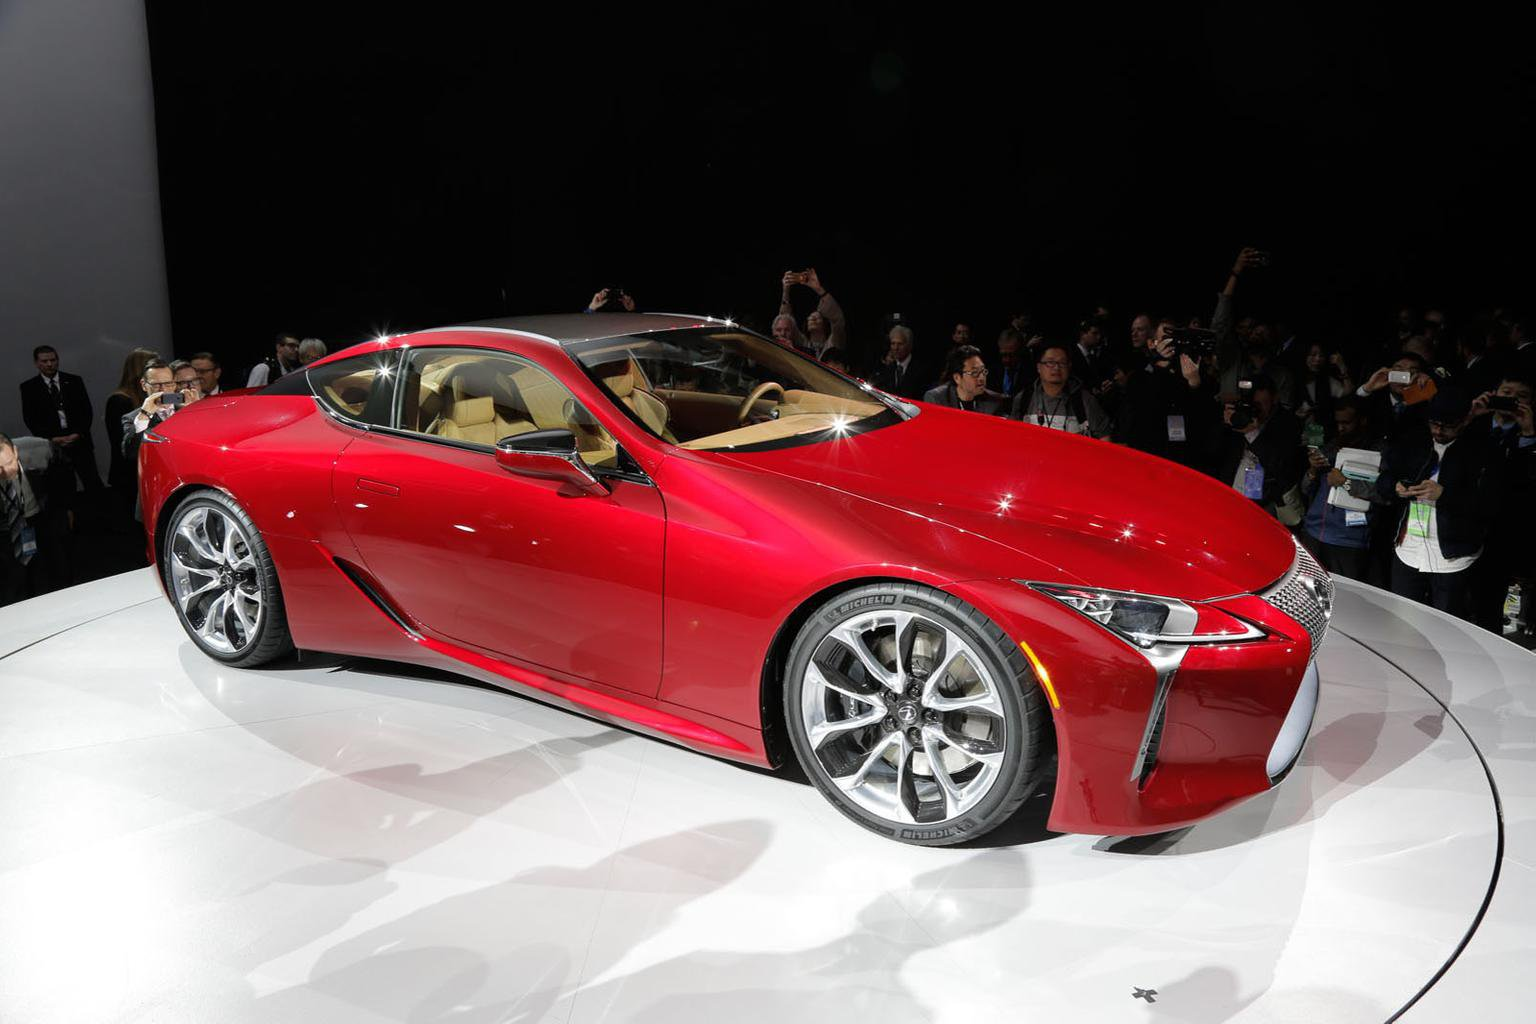 Lexus LC 500 coup unveiled at Detroit motor show